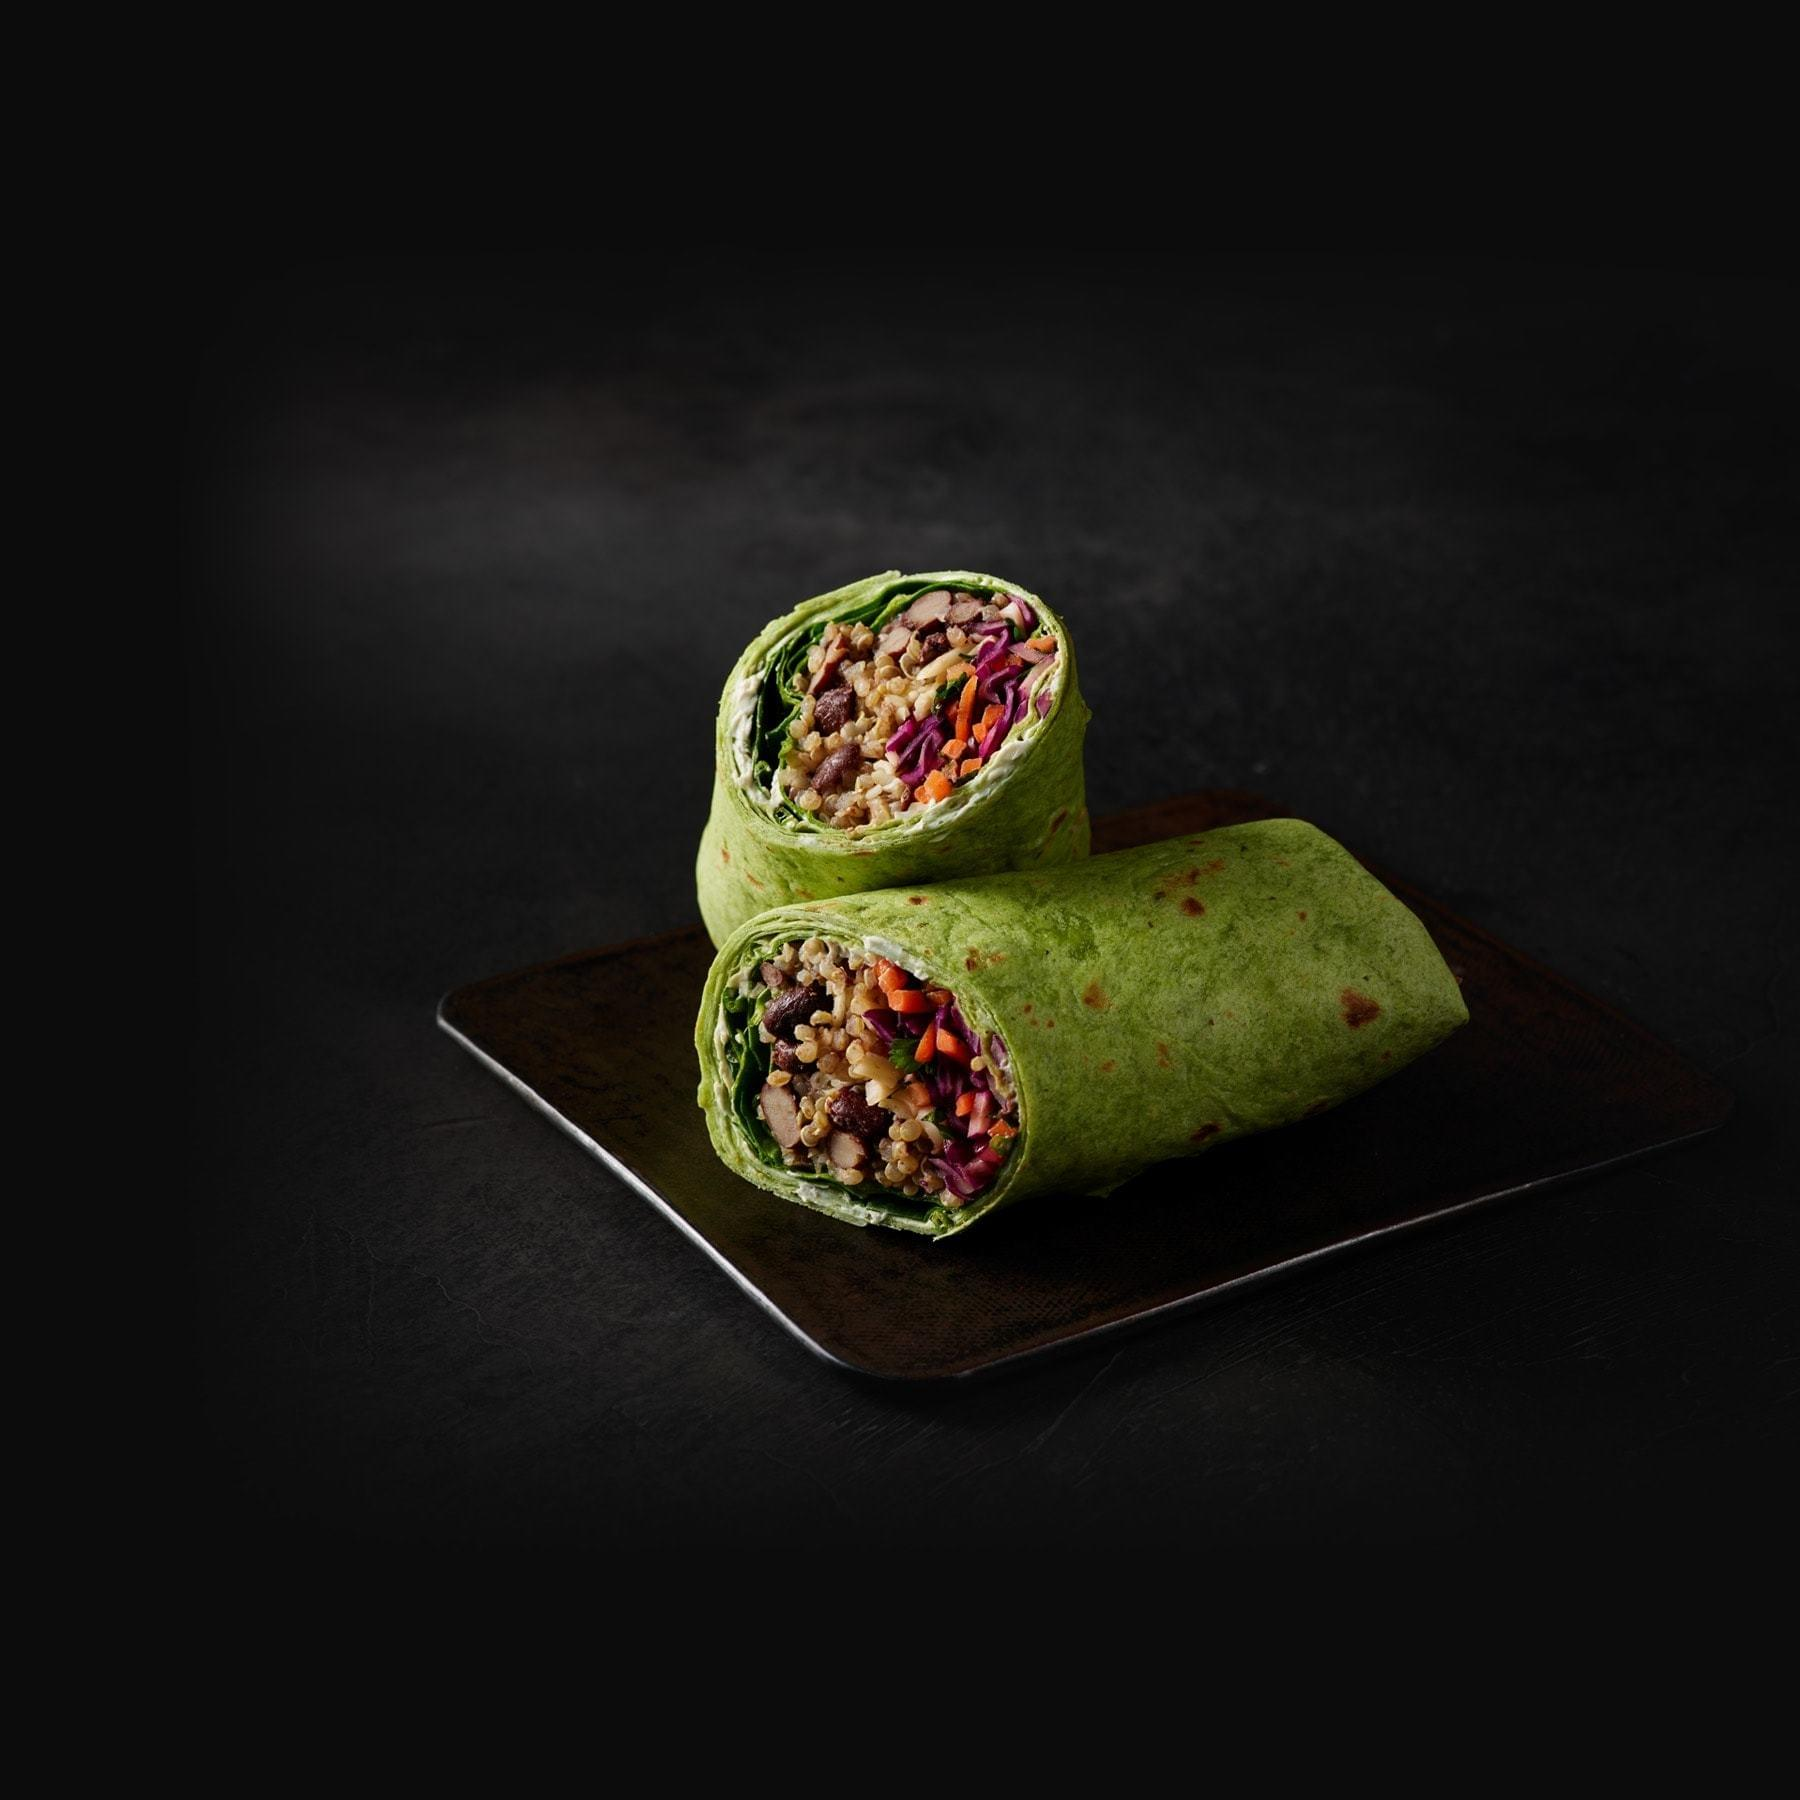 Starbucks Baja Black Bean Veggie Wrap Nutrition Facts